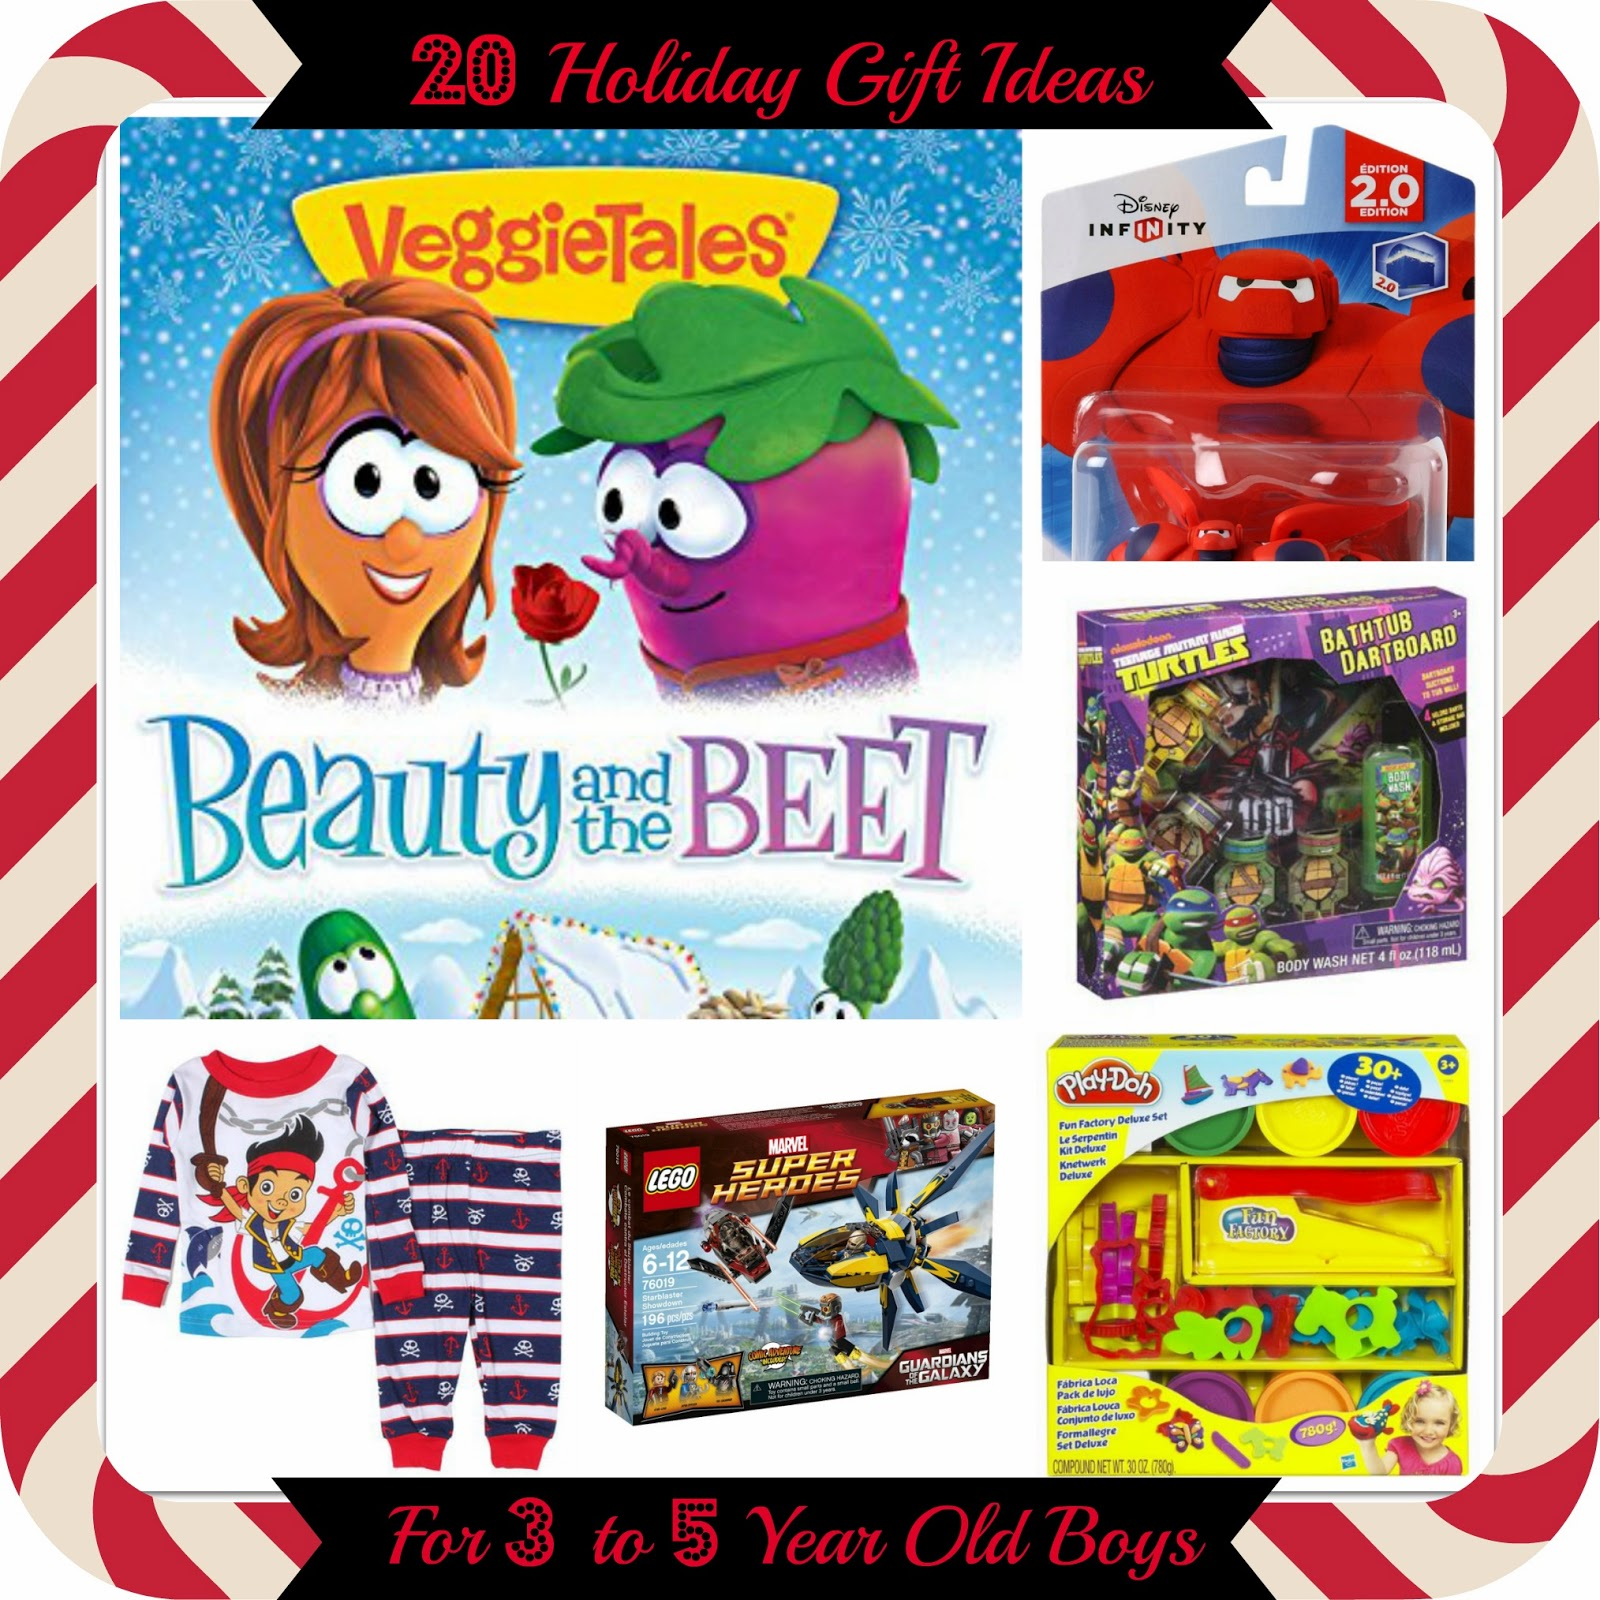 20 Holiday Gift Ideas for 3-5 Year Old Boys (2014)